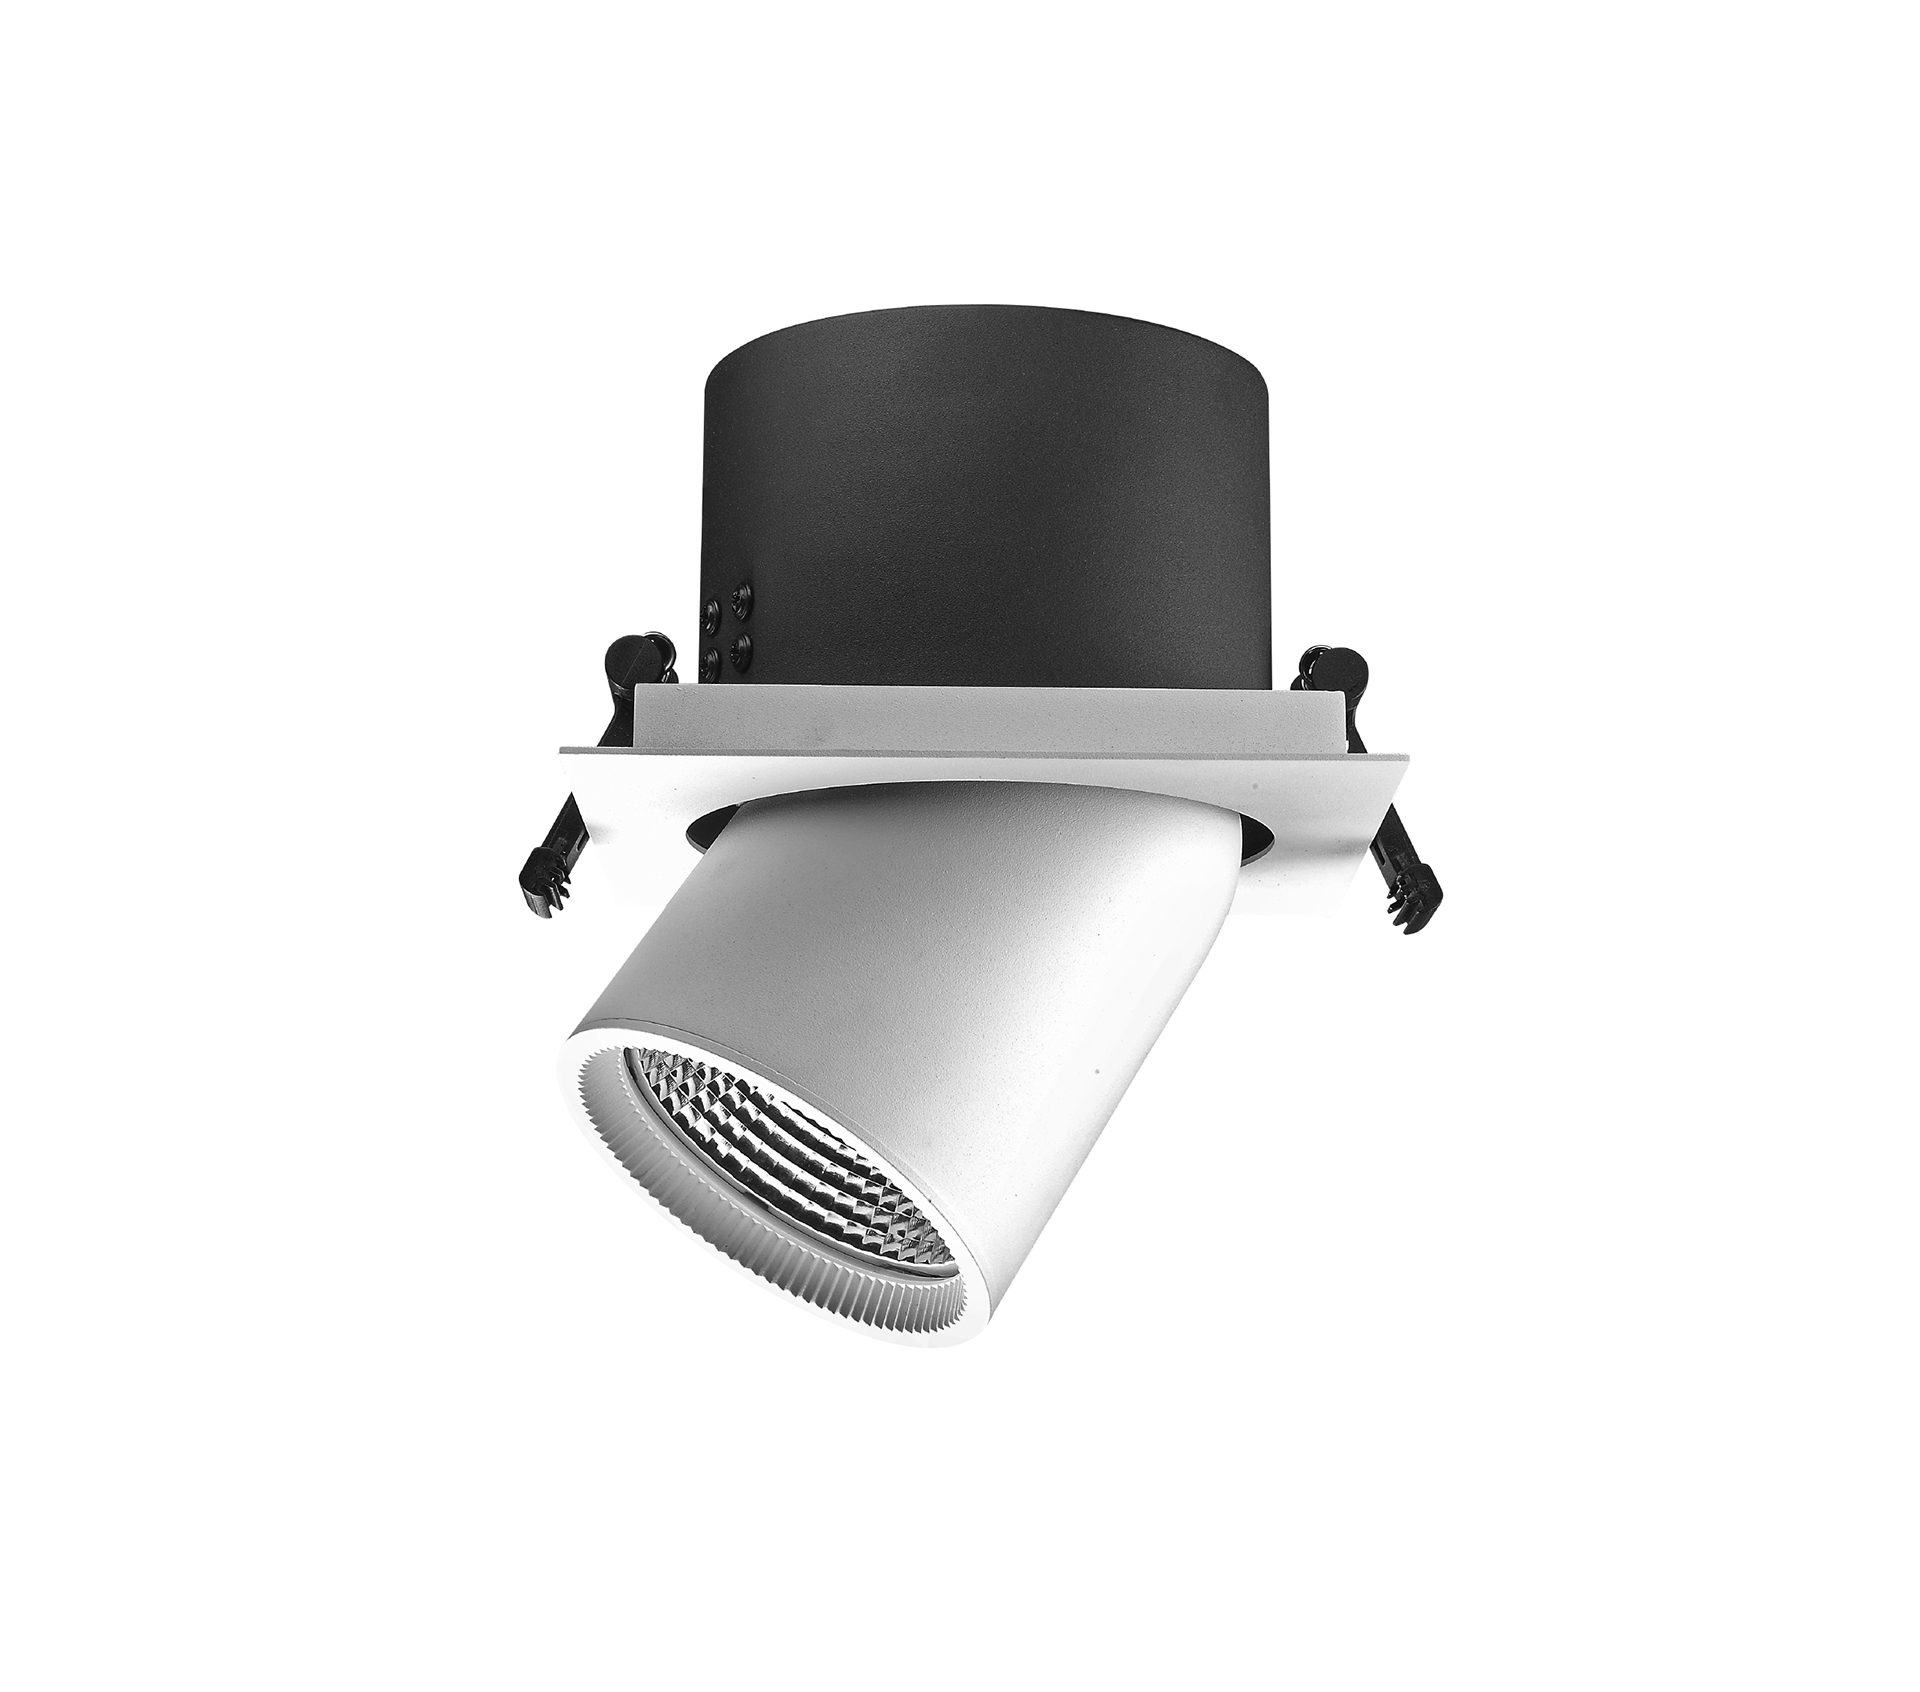 Recessed LED spotlight 1x30W 1x35W